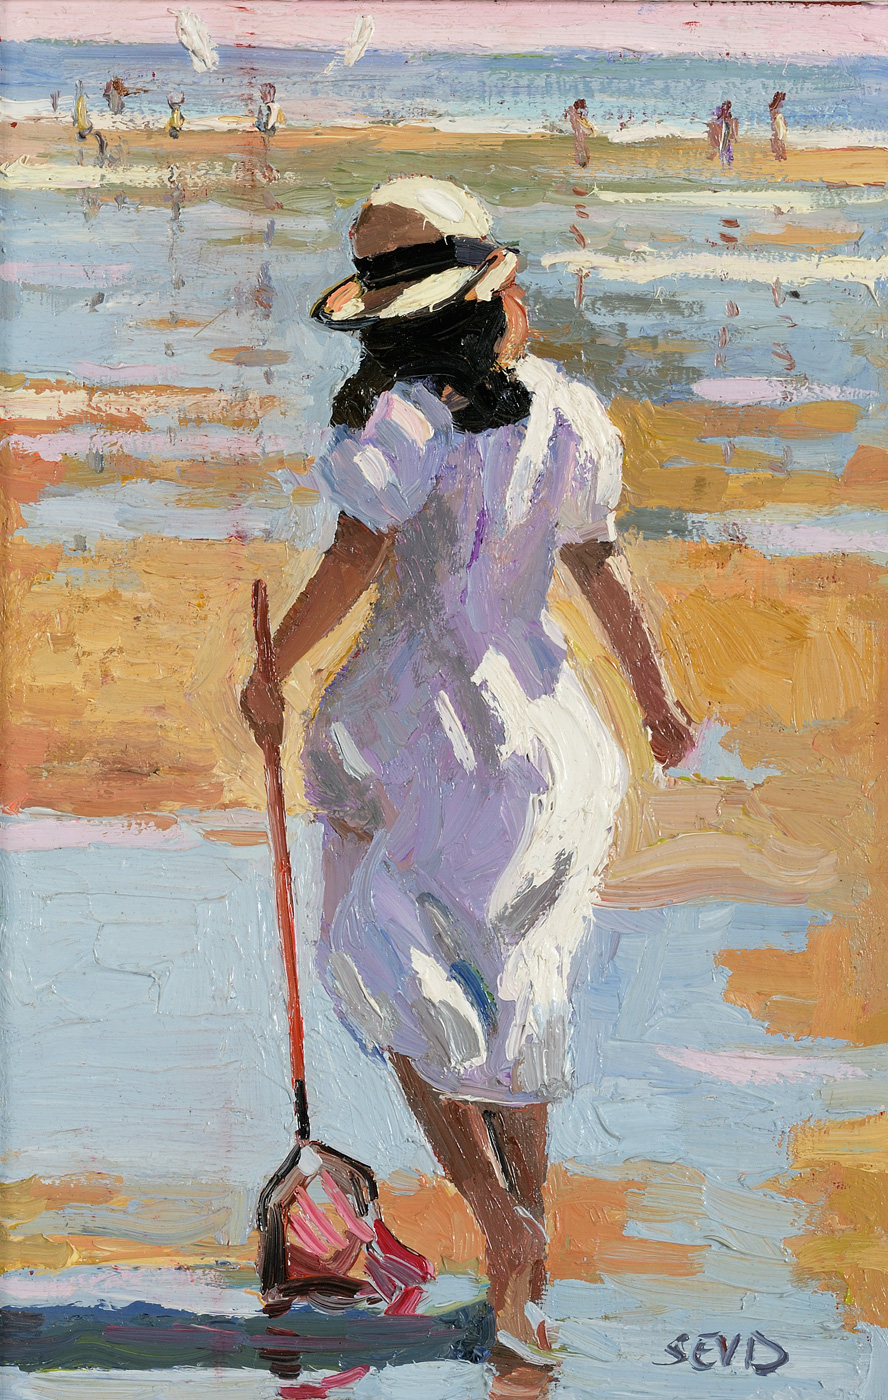 Girl with Net by  Sherree Valentine-Daines